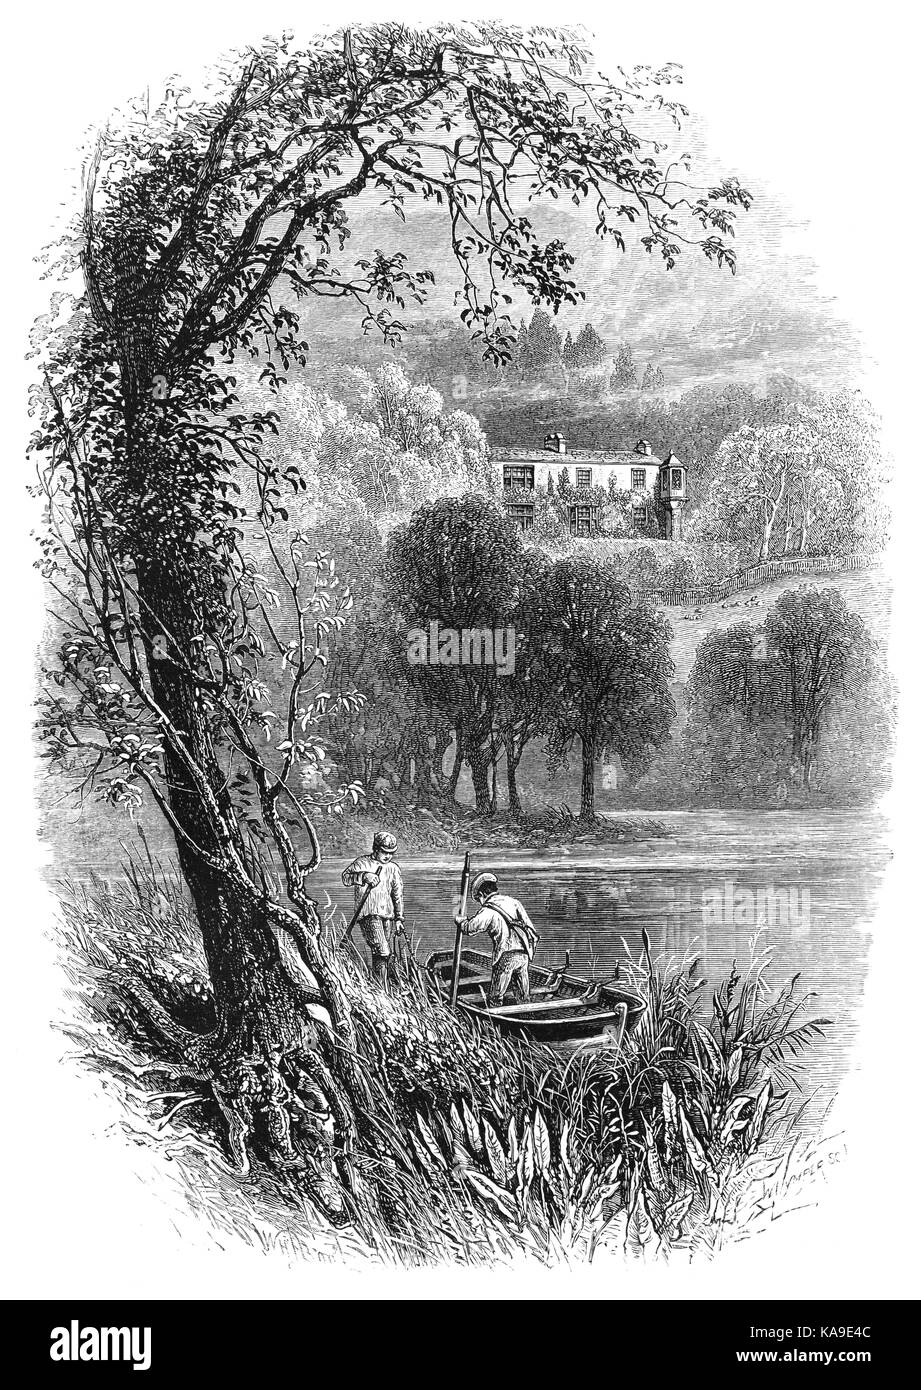 1870: Boatmen in Coniston Water, with Brantwood, the house of John Ruskin, the leading English art critic of the - Stock Image